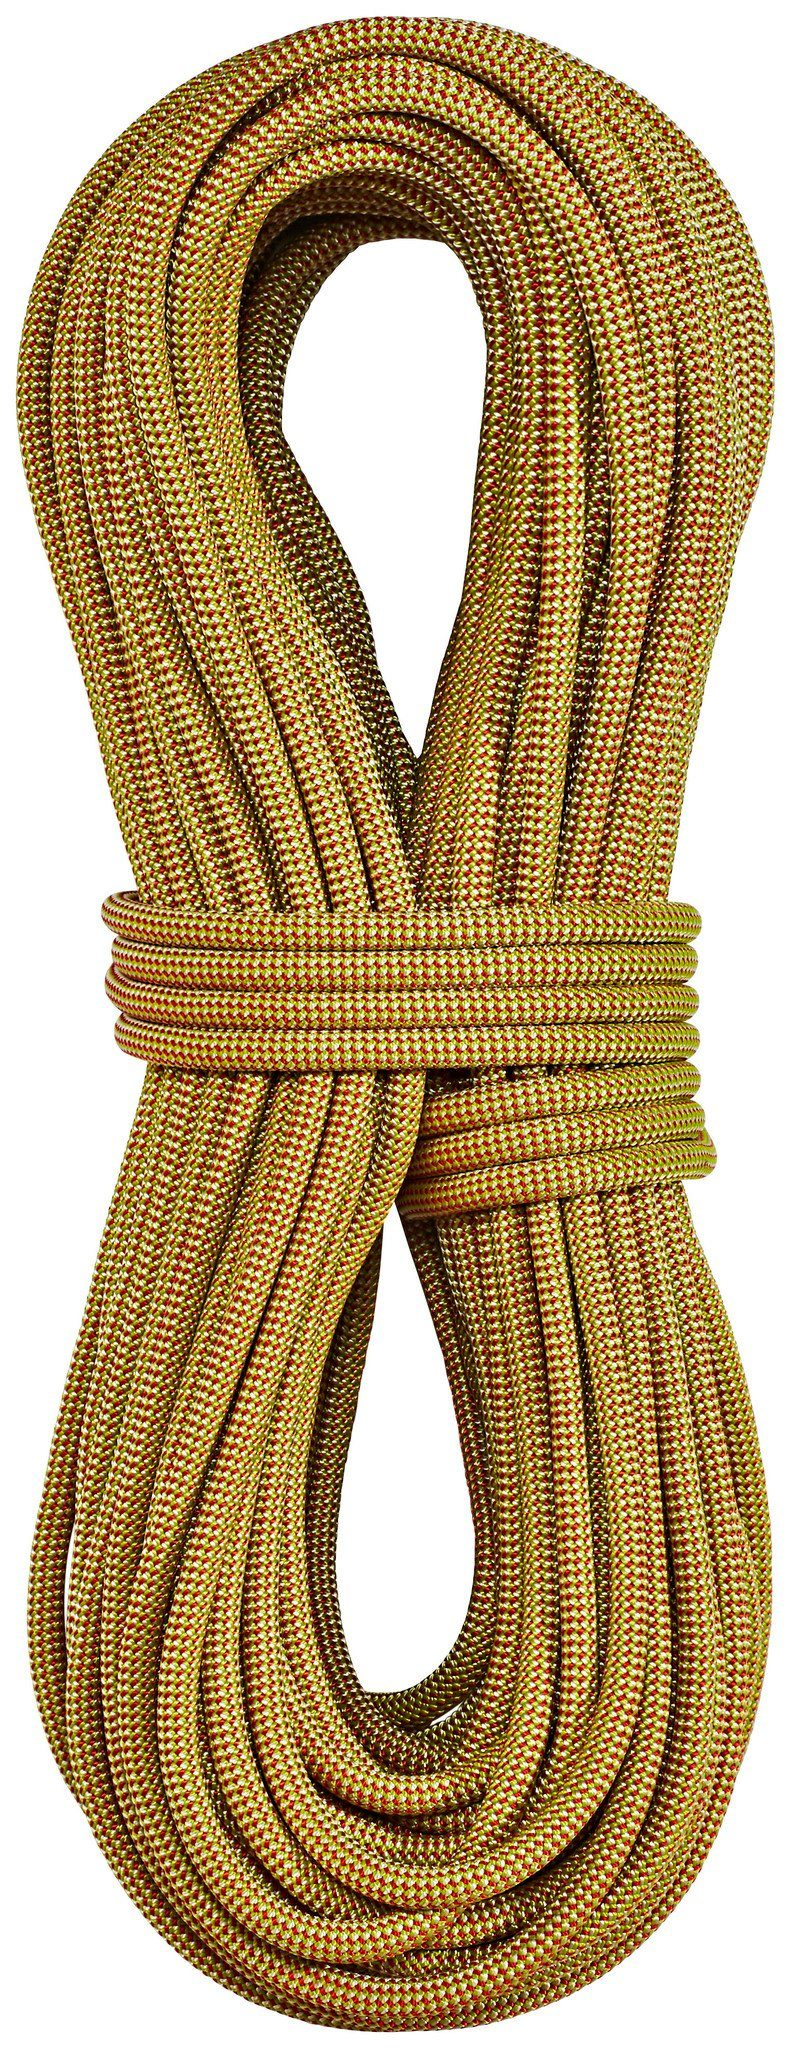 Edelrid Kletterseil »Boa Rope 9,8mm 70m with Caddy Liner«